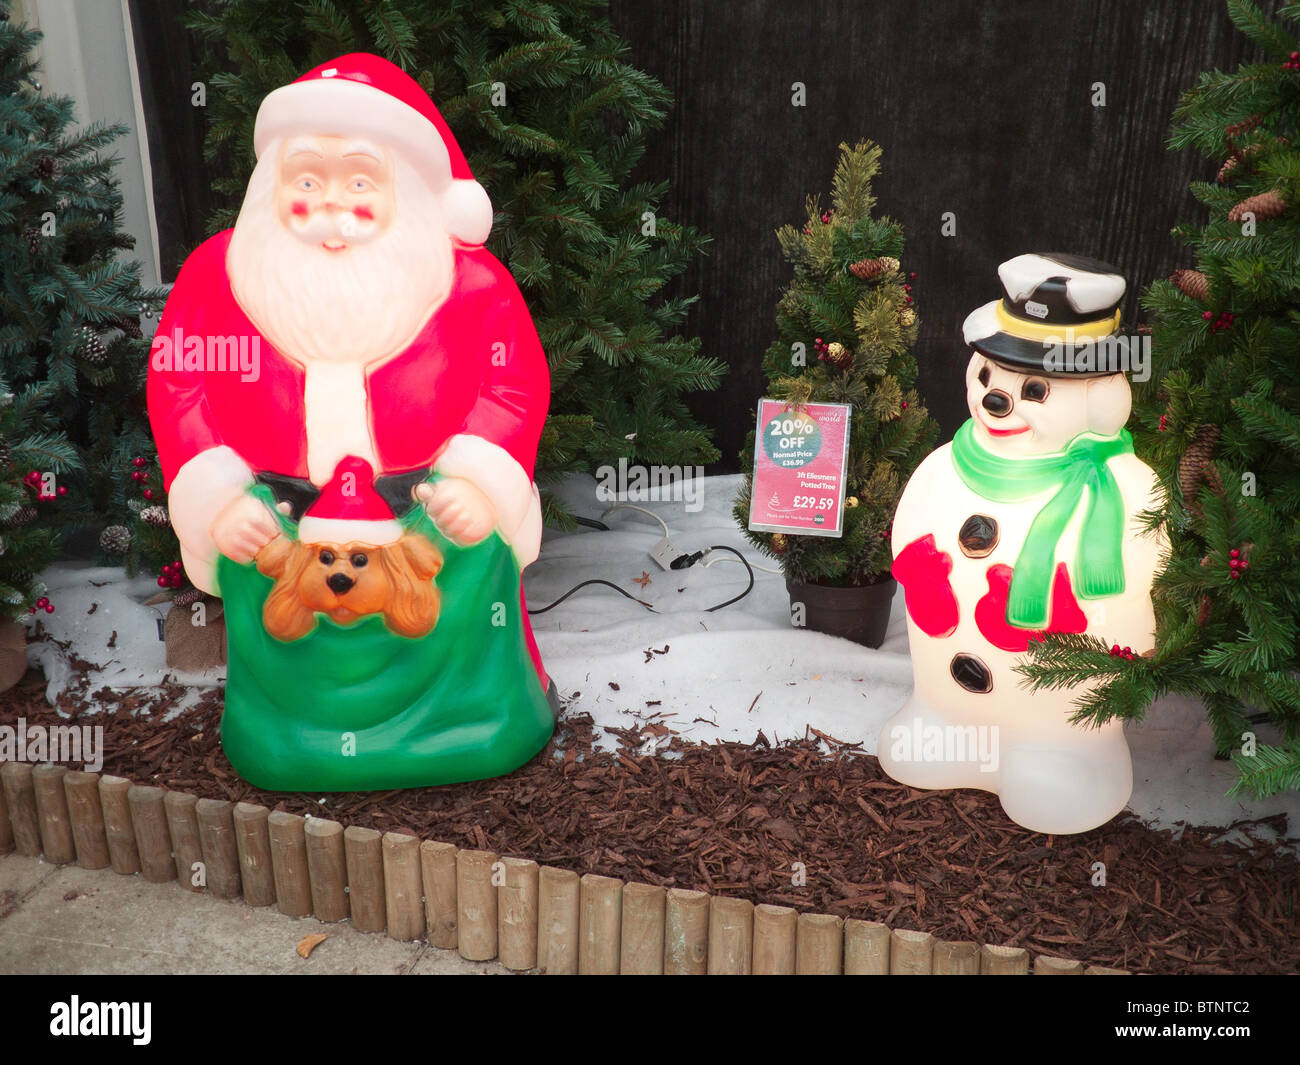 Garden decorations for sale - Illuminated Plastic Father Christmas And Snowman Decorations For Sale In A Garden Centre